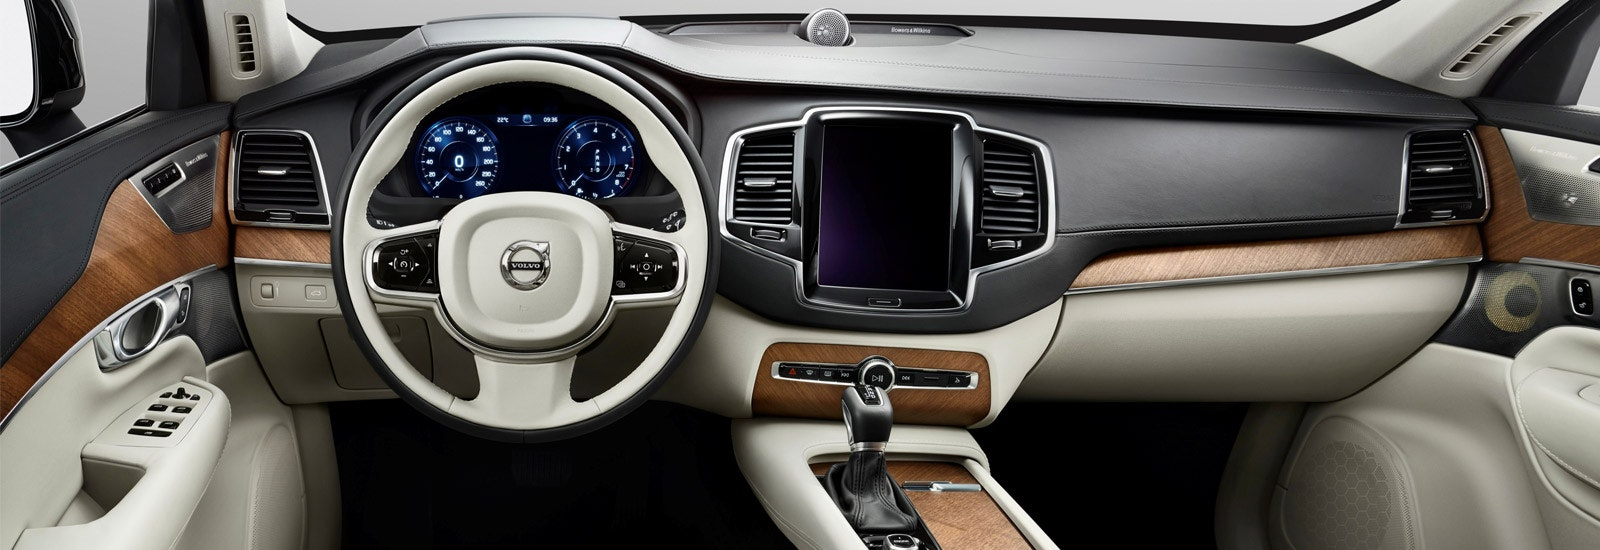 The XC40's interior should draw inspiration from the XC90, shown ...